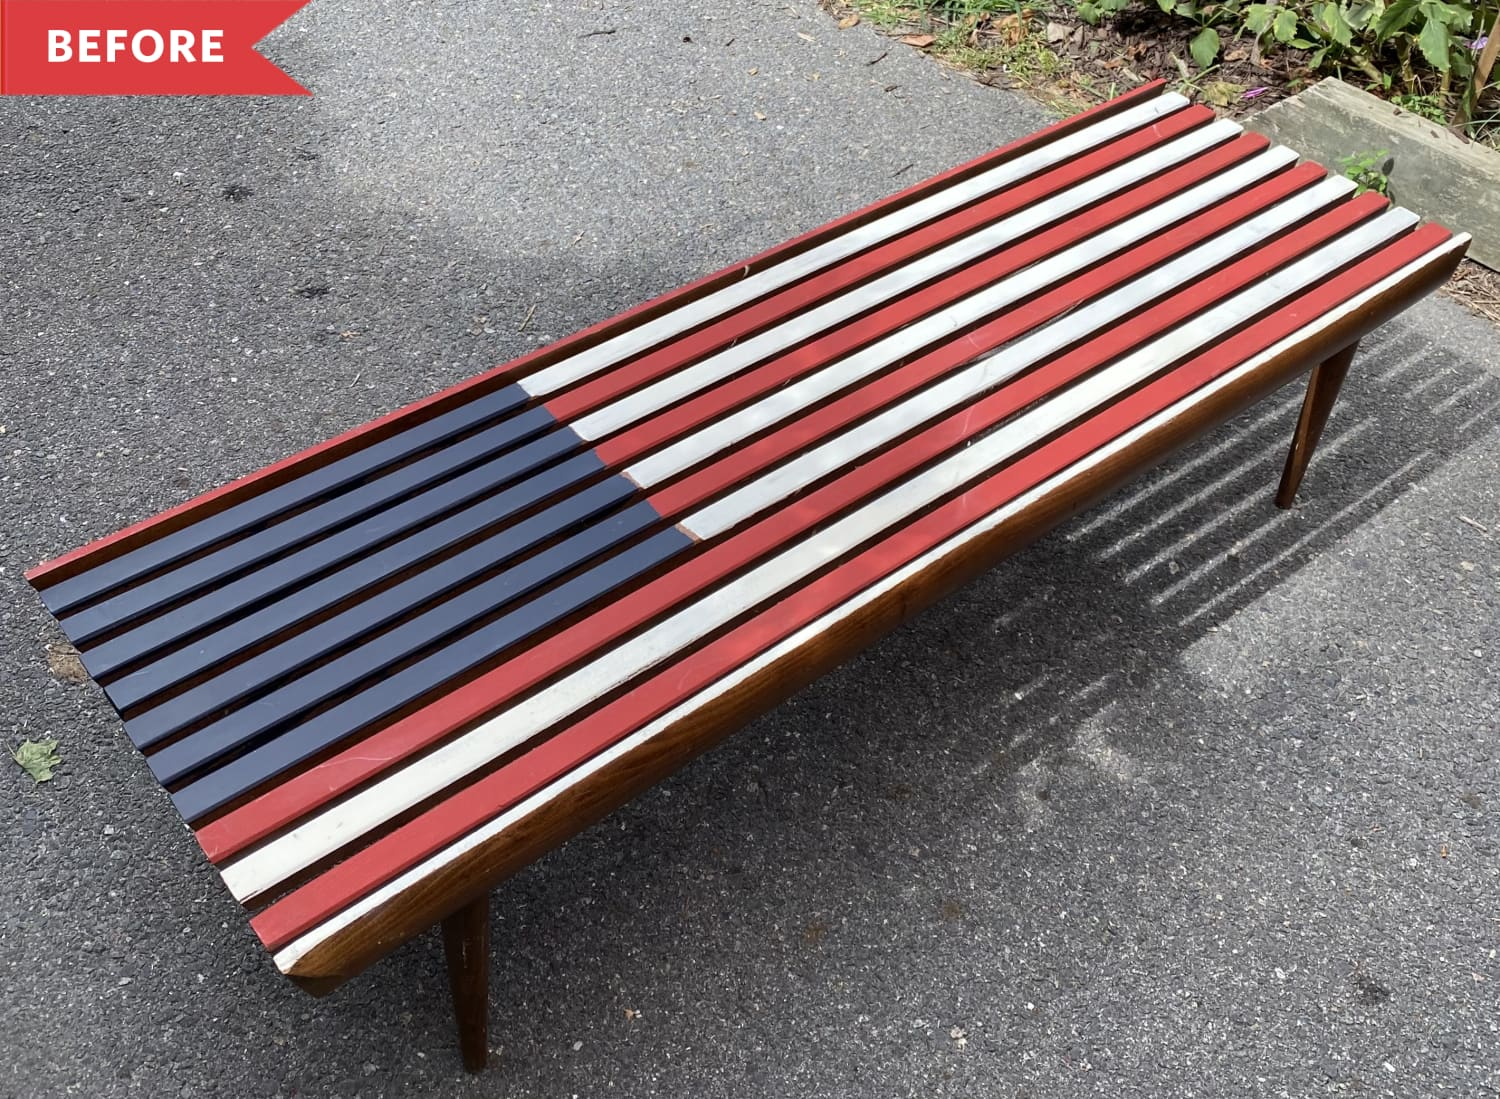 Before and After: A Stylish Make-Under for This Authentic Mid-Century Bench